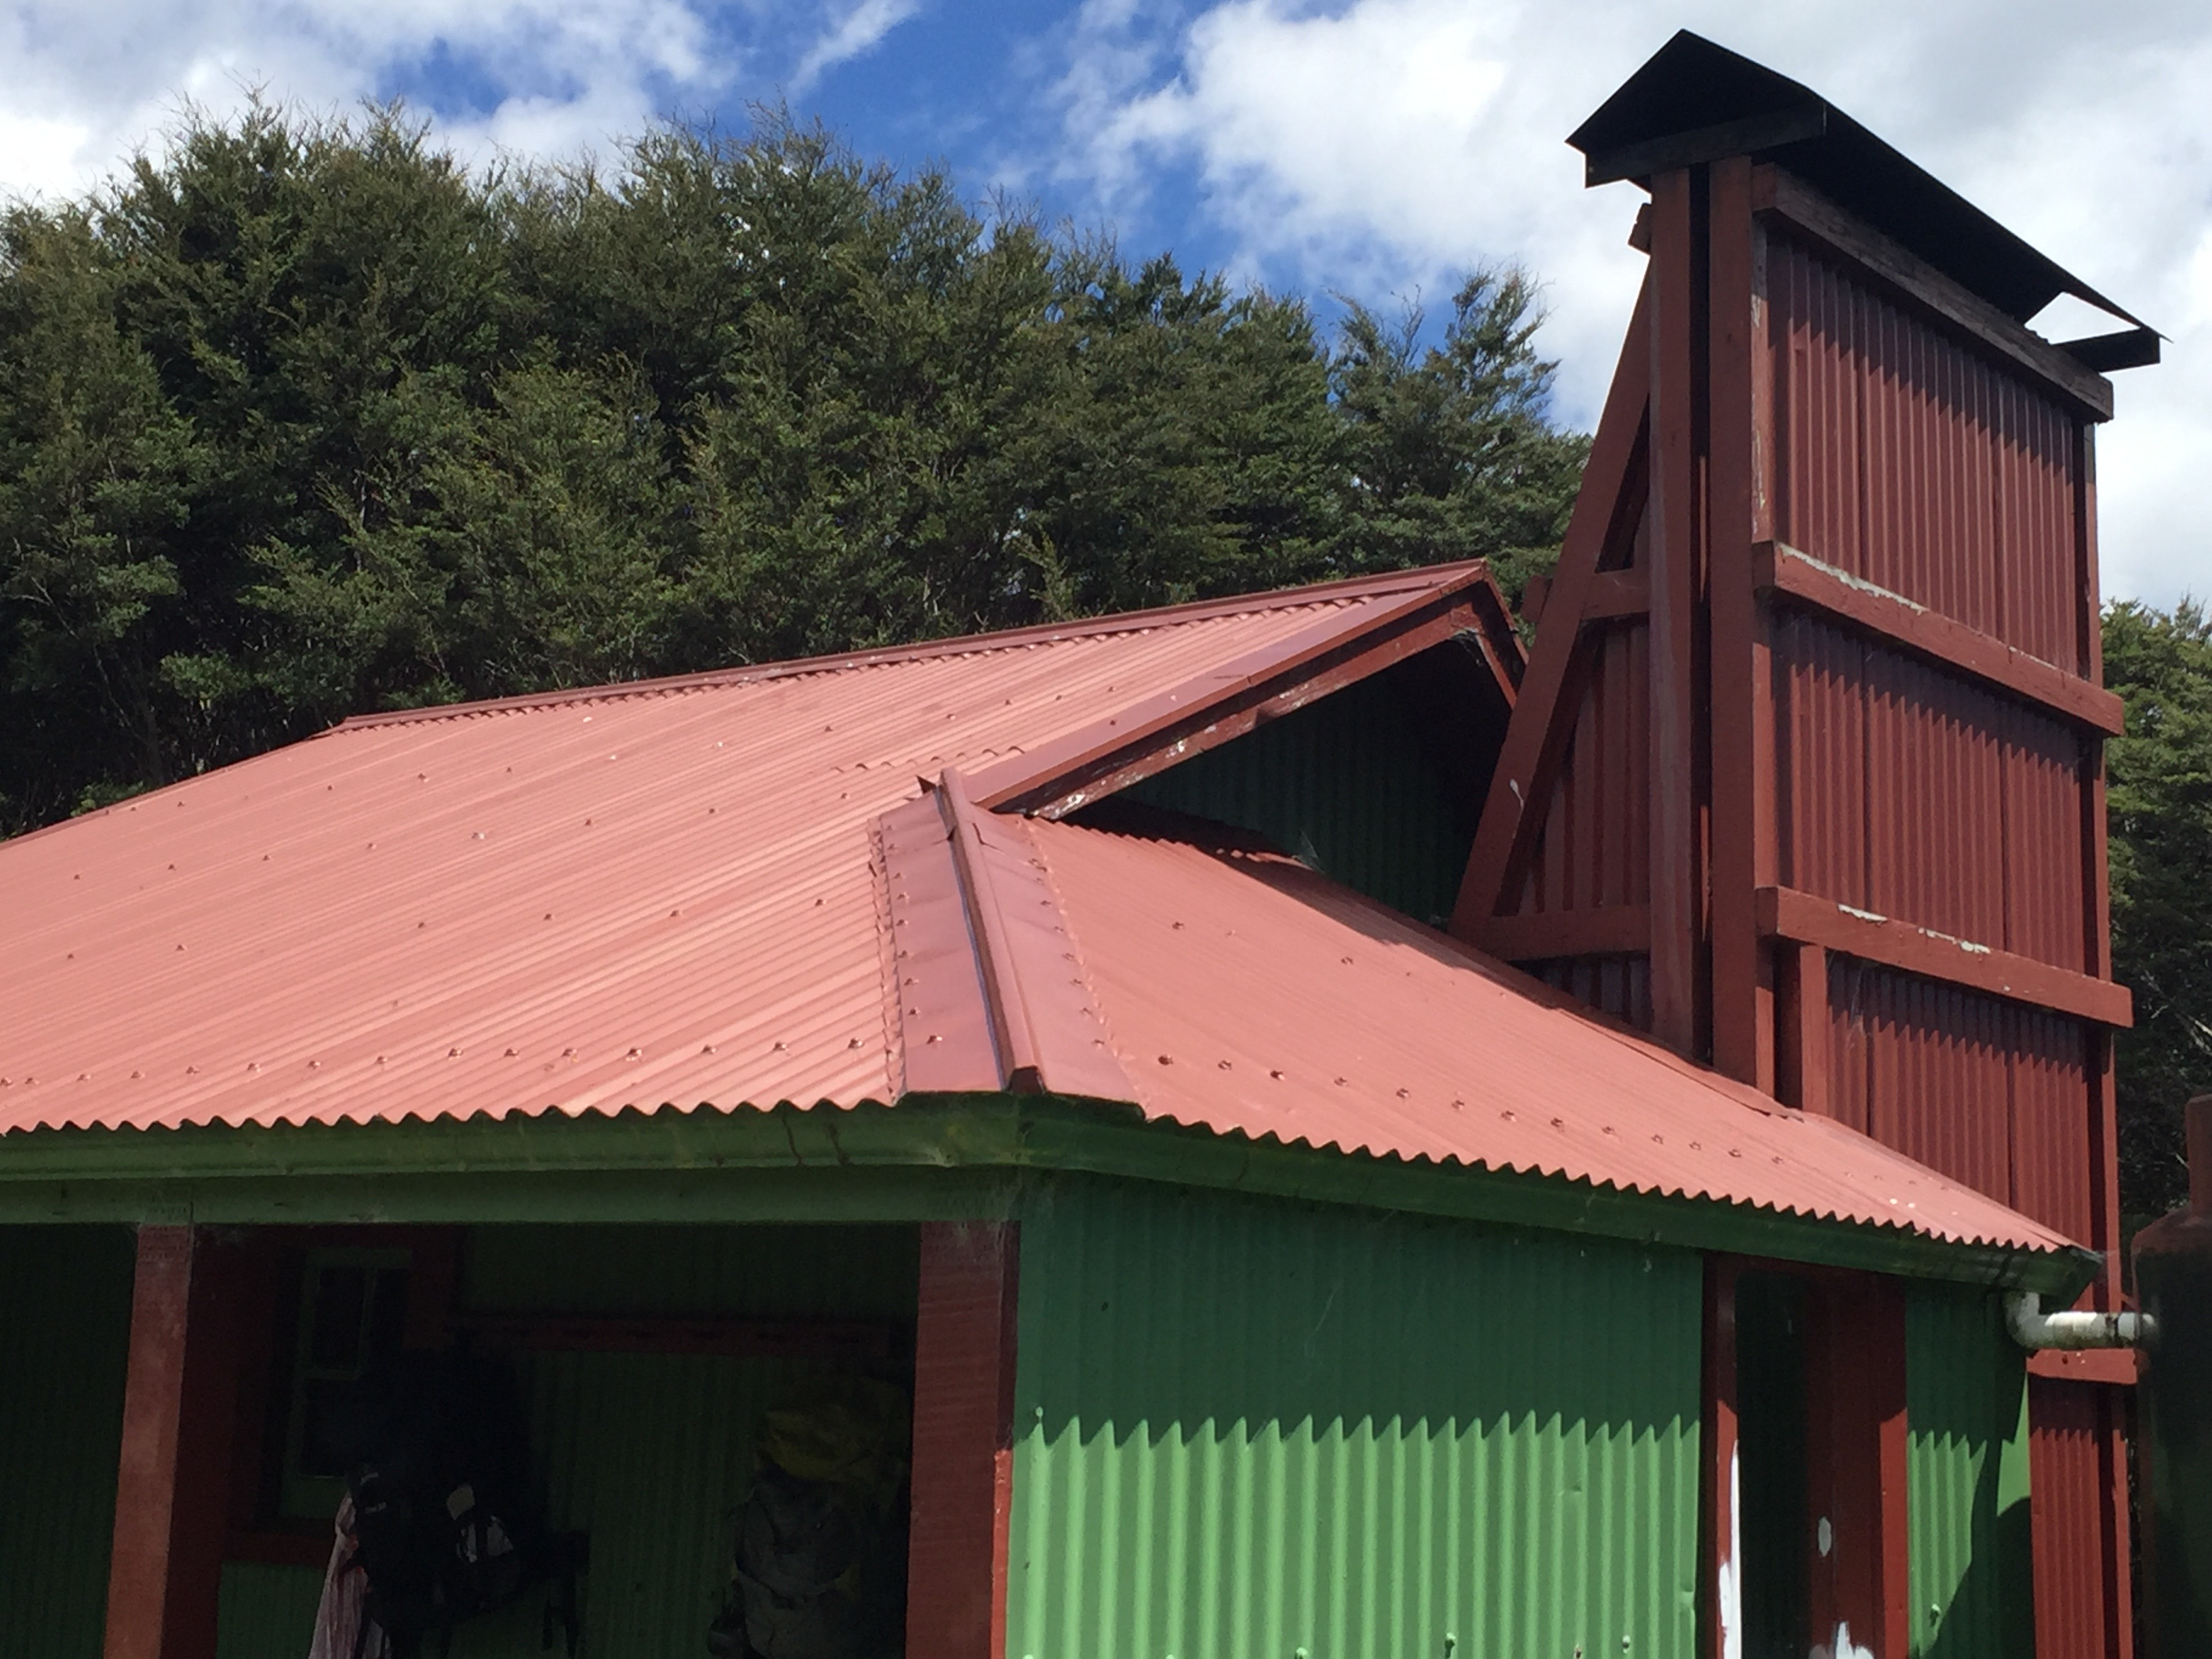 New Zealand Huts - how many? What kinds? What do they look like?